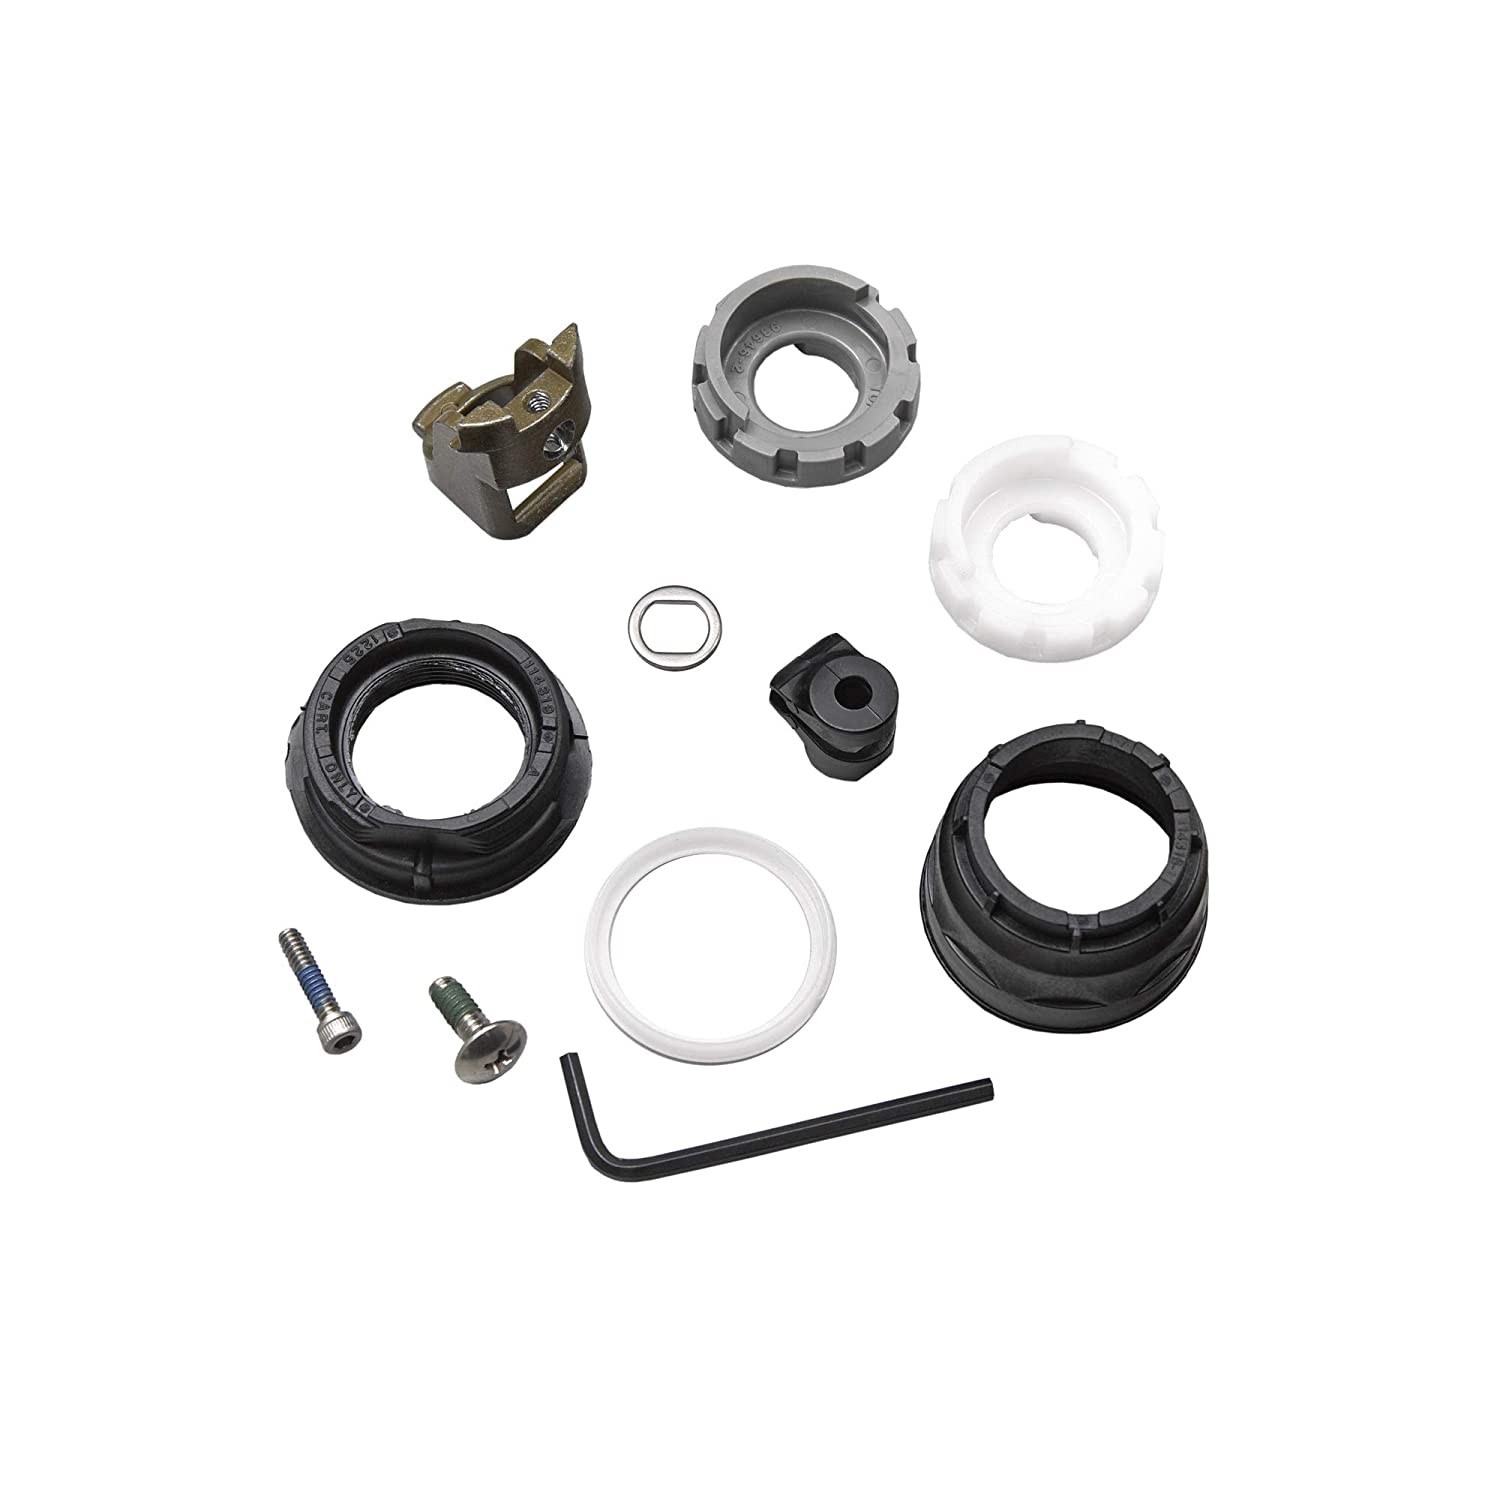 . Moen 93980 Replacement Handle Mechanism Kit for One Handle Kitchen Faucet  Repairs